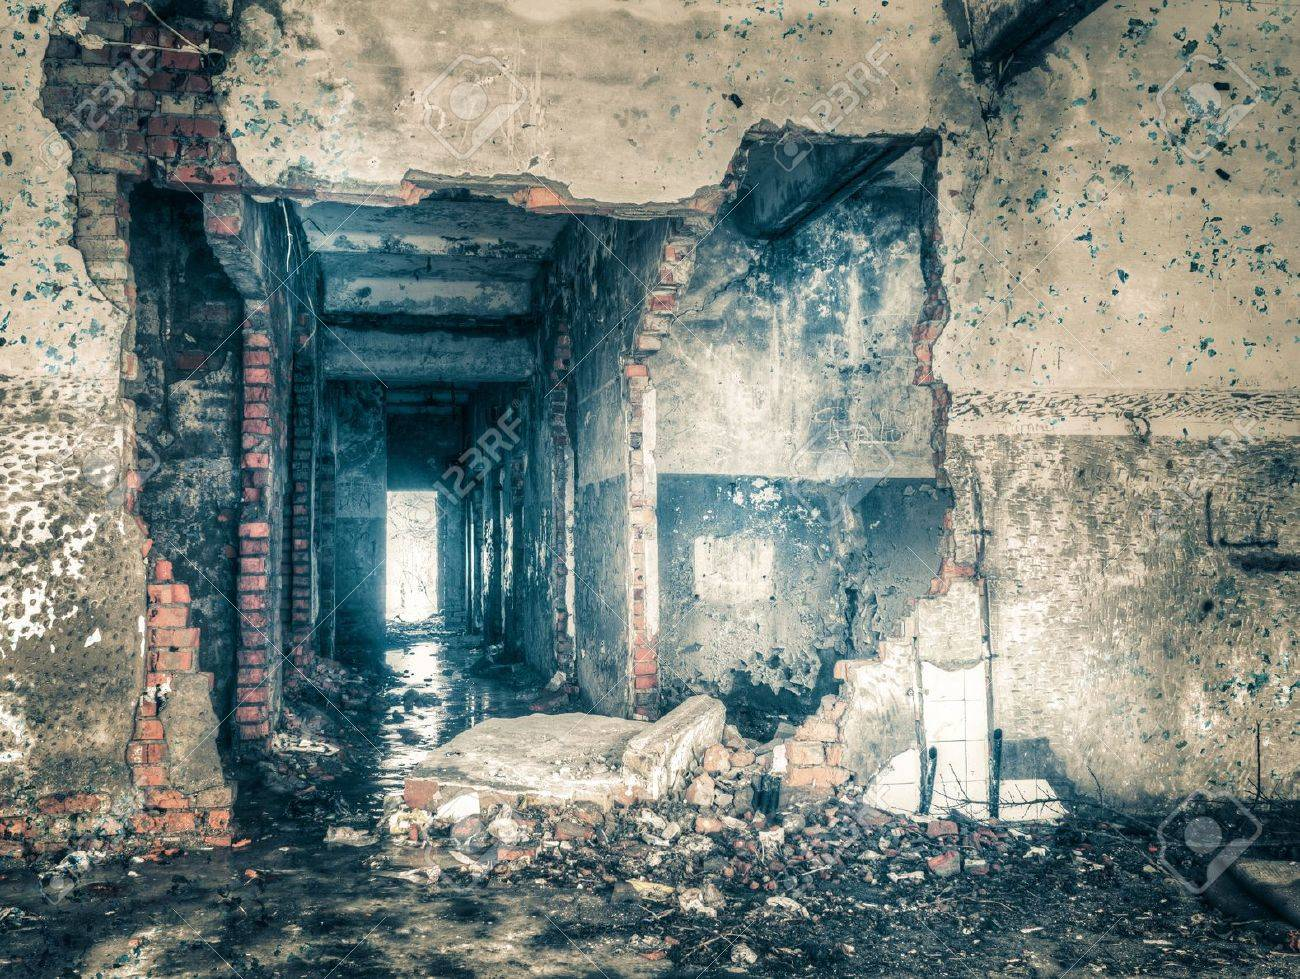 High Dynamic Range Image of an Abandoned building - 18971065